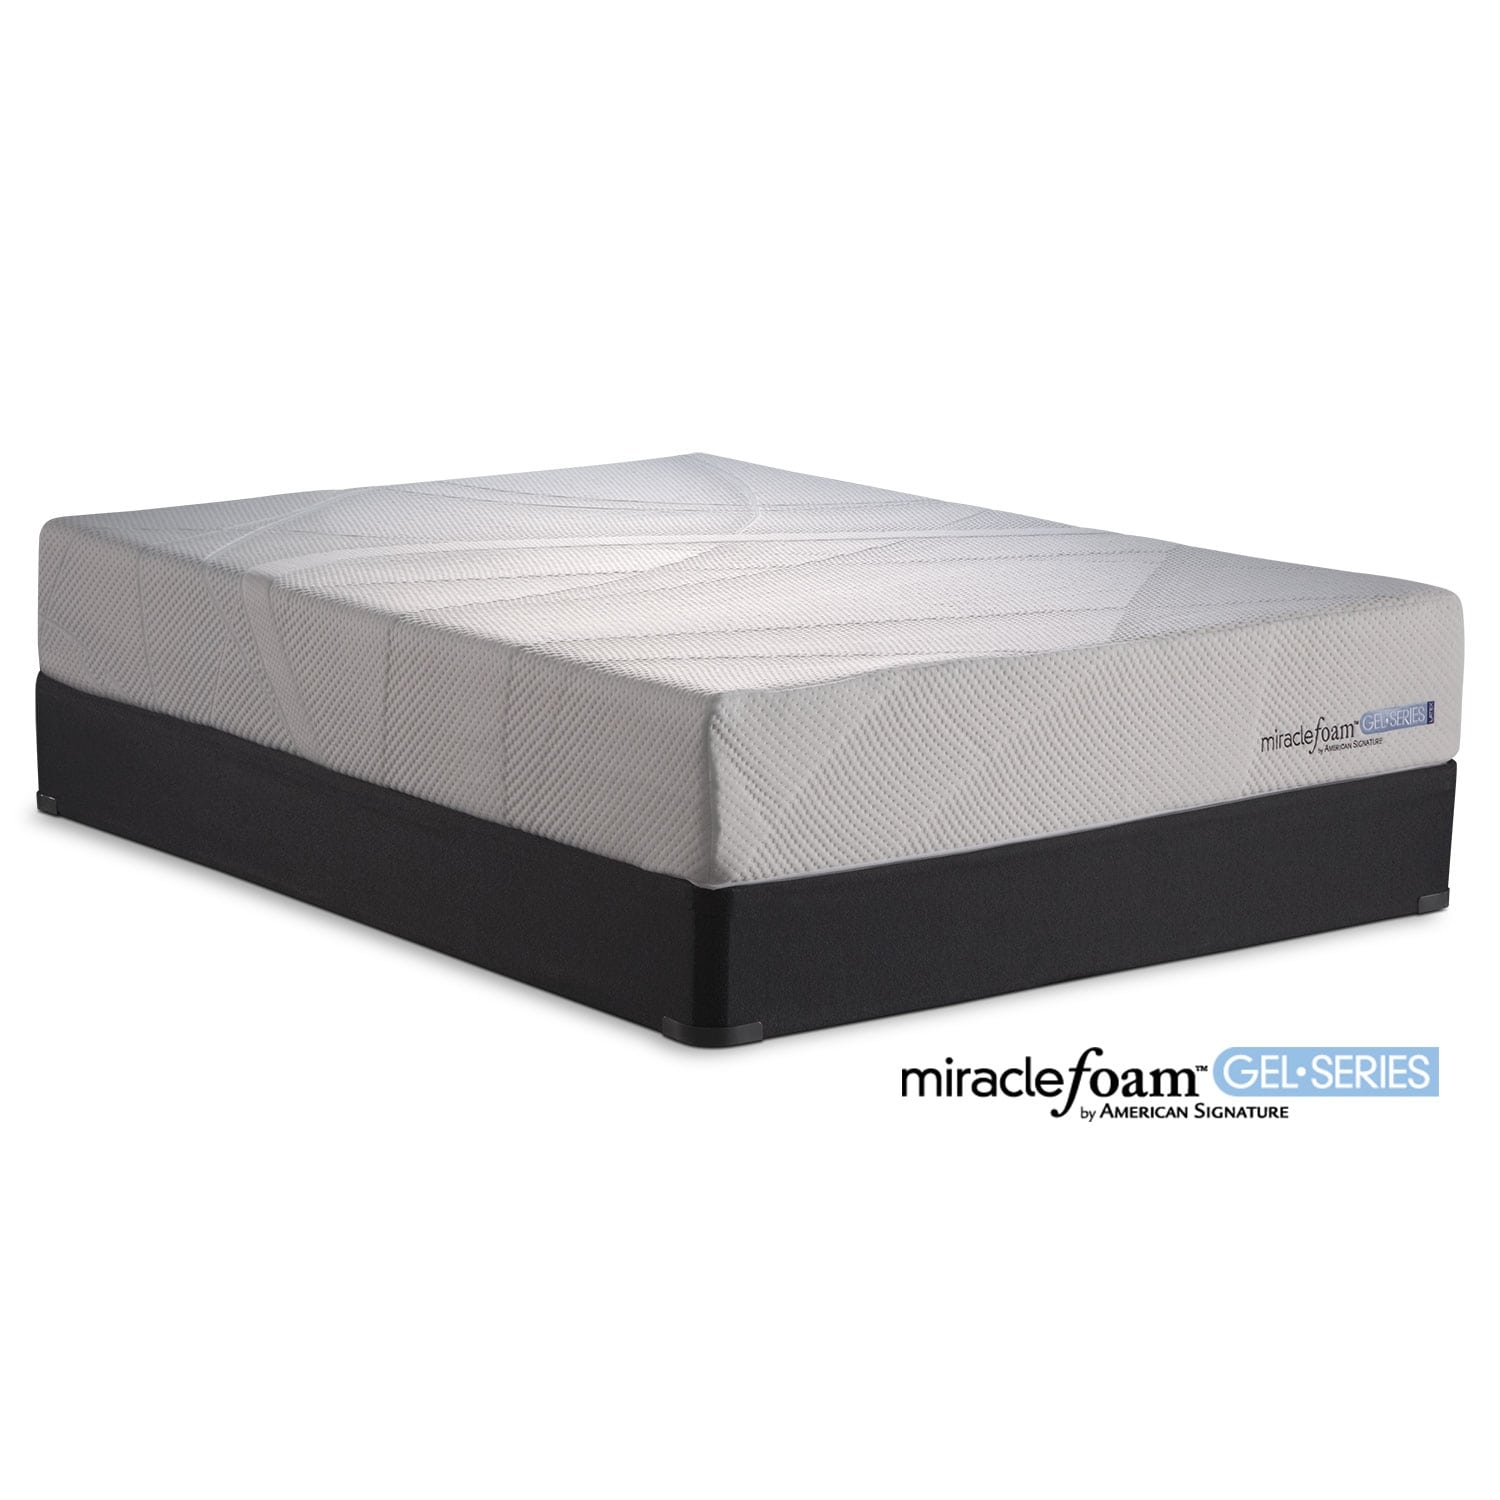 Mattresses and Bedding - Invigorate II Queen Mattress/Split Foundation Set